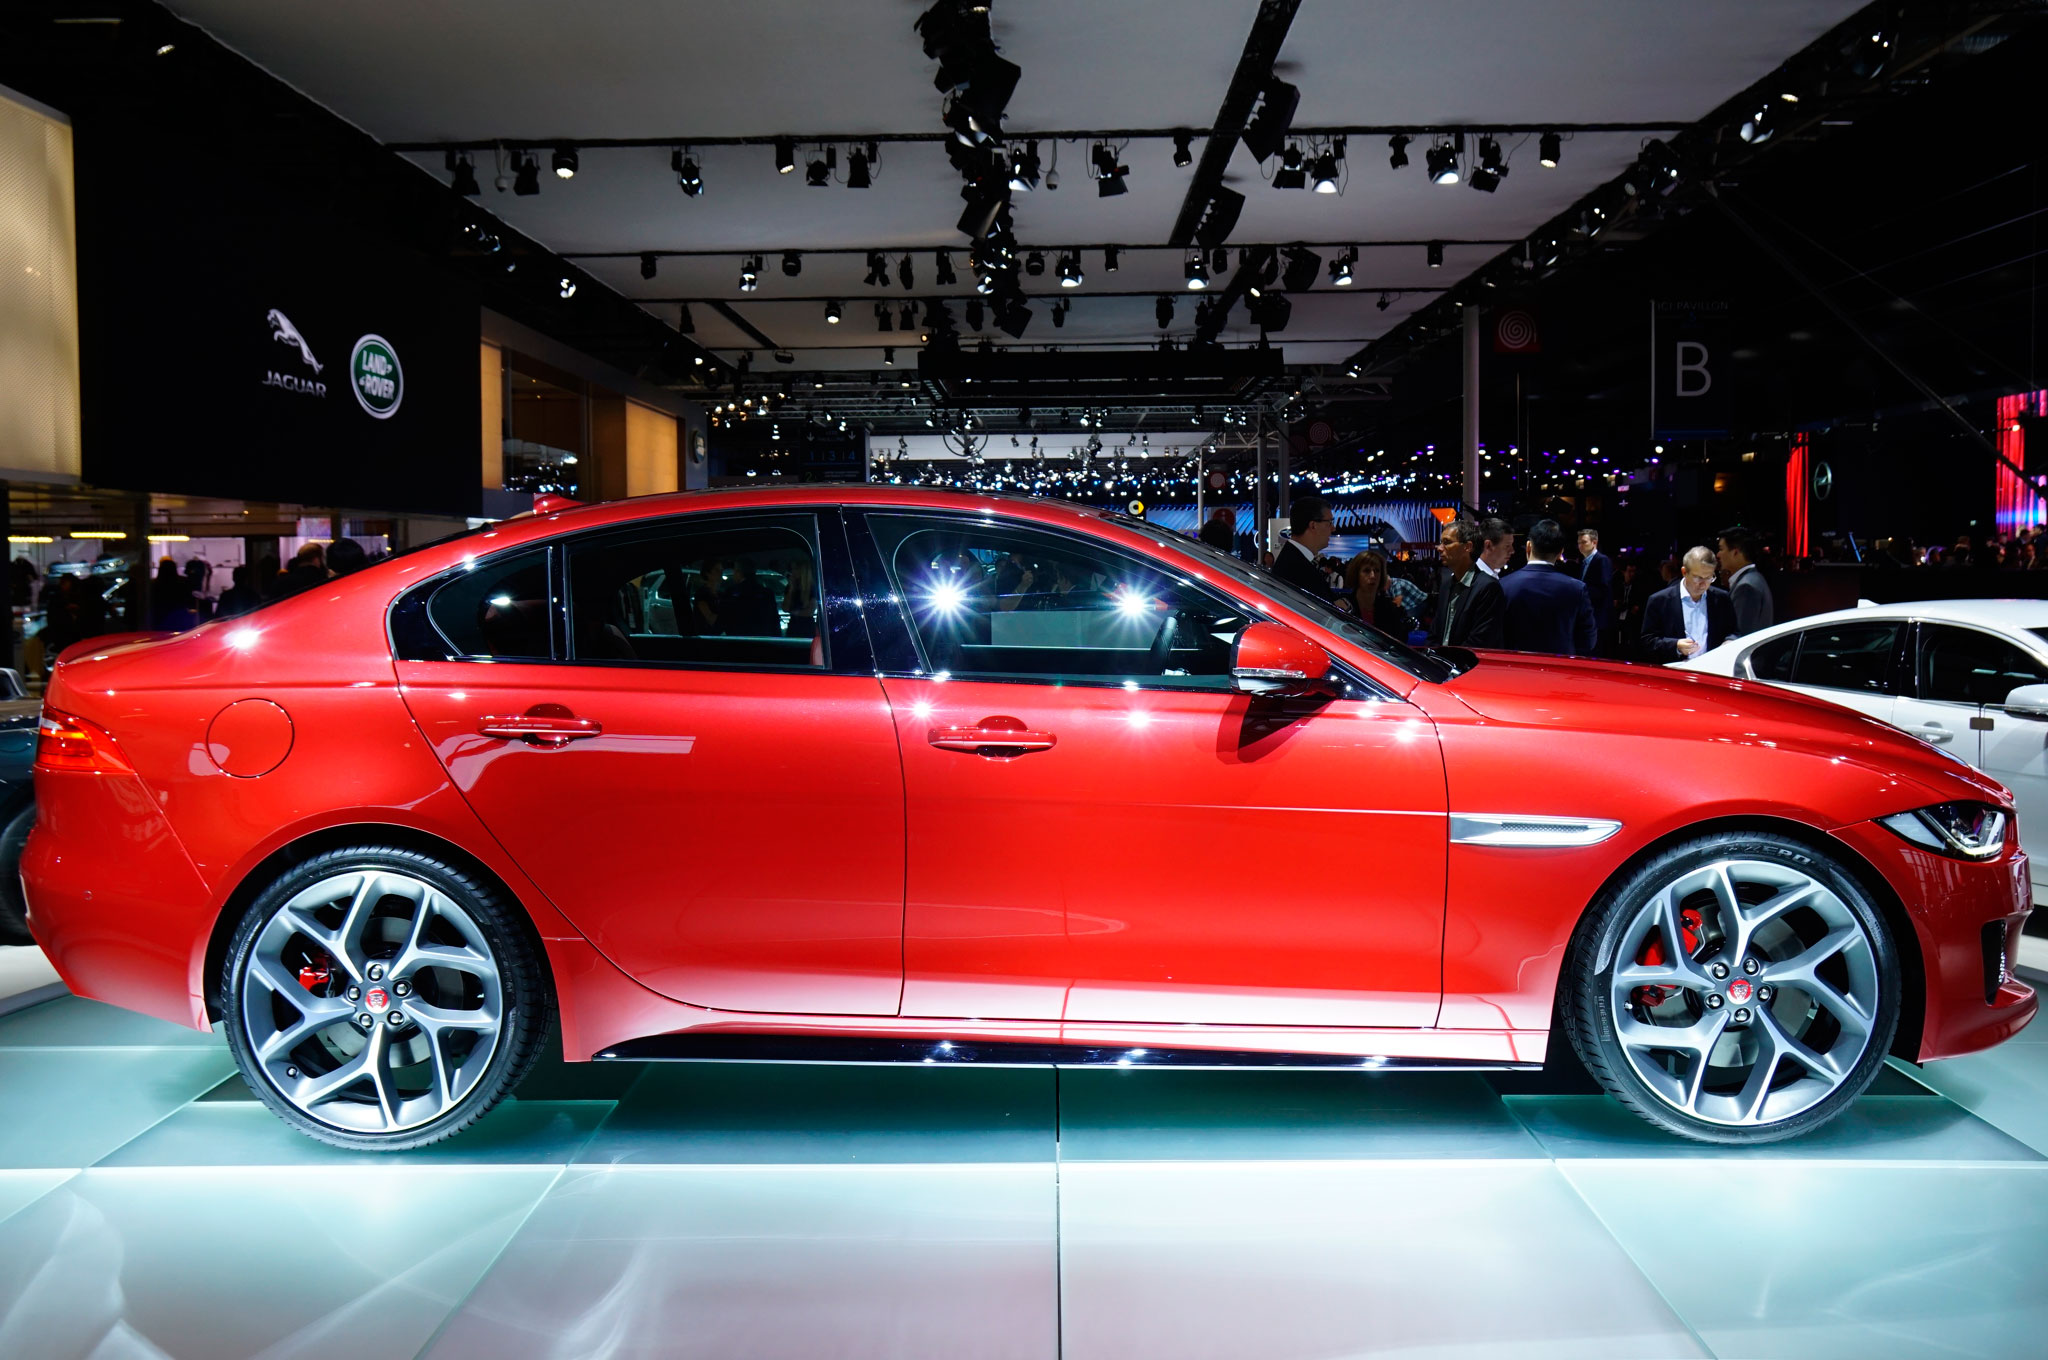 2016 Jaguar Xe Red (View 5 of 12)